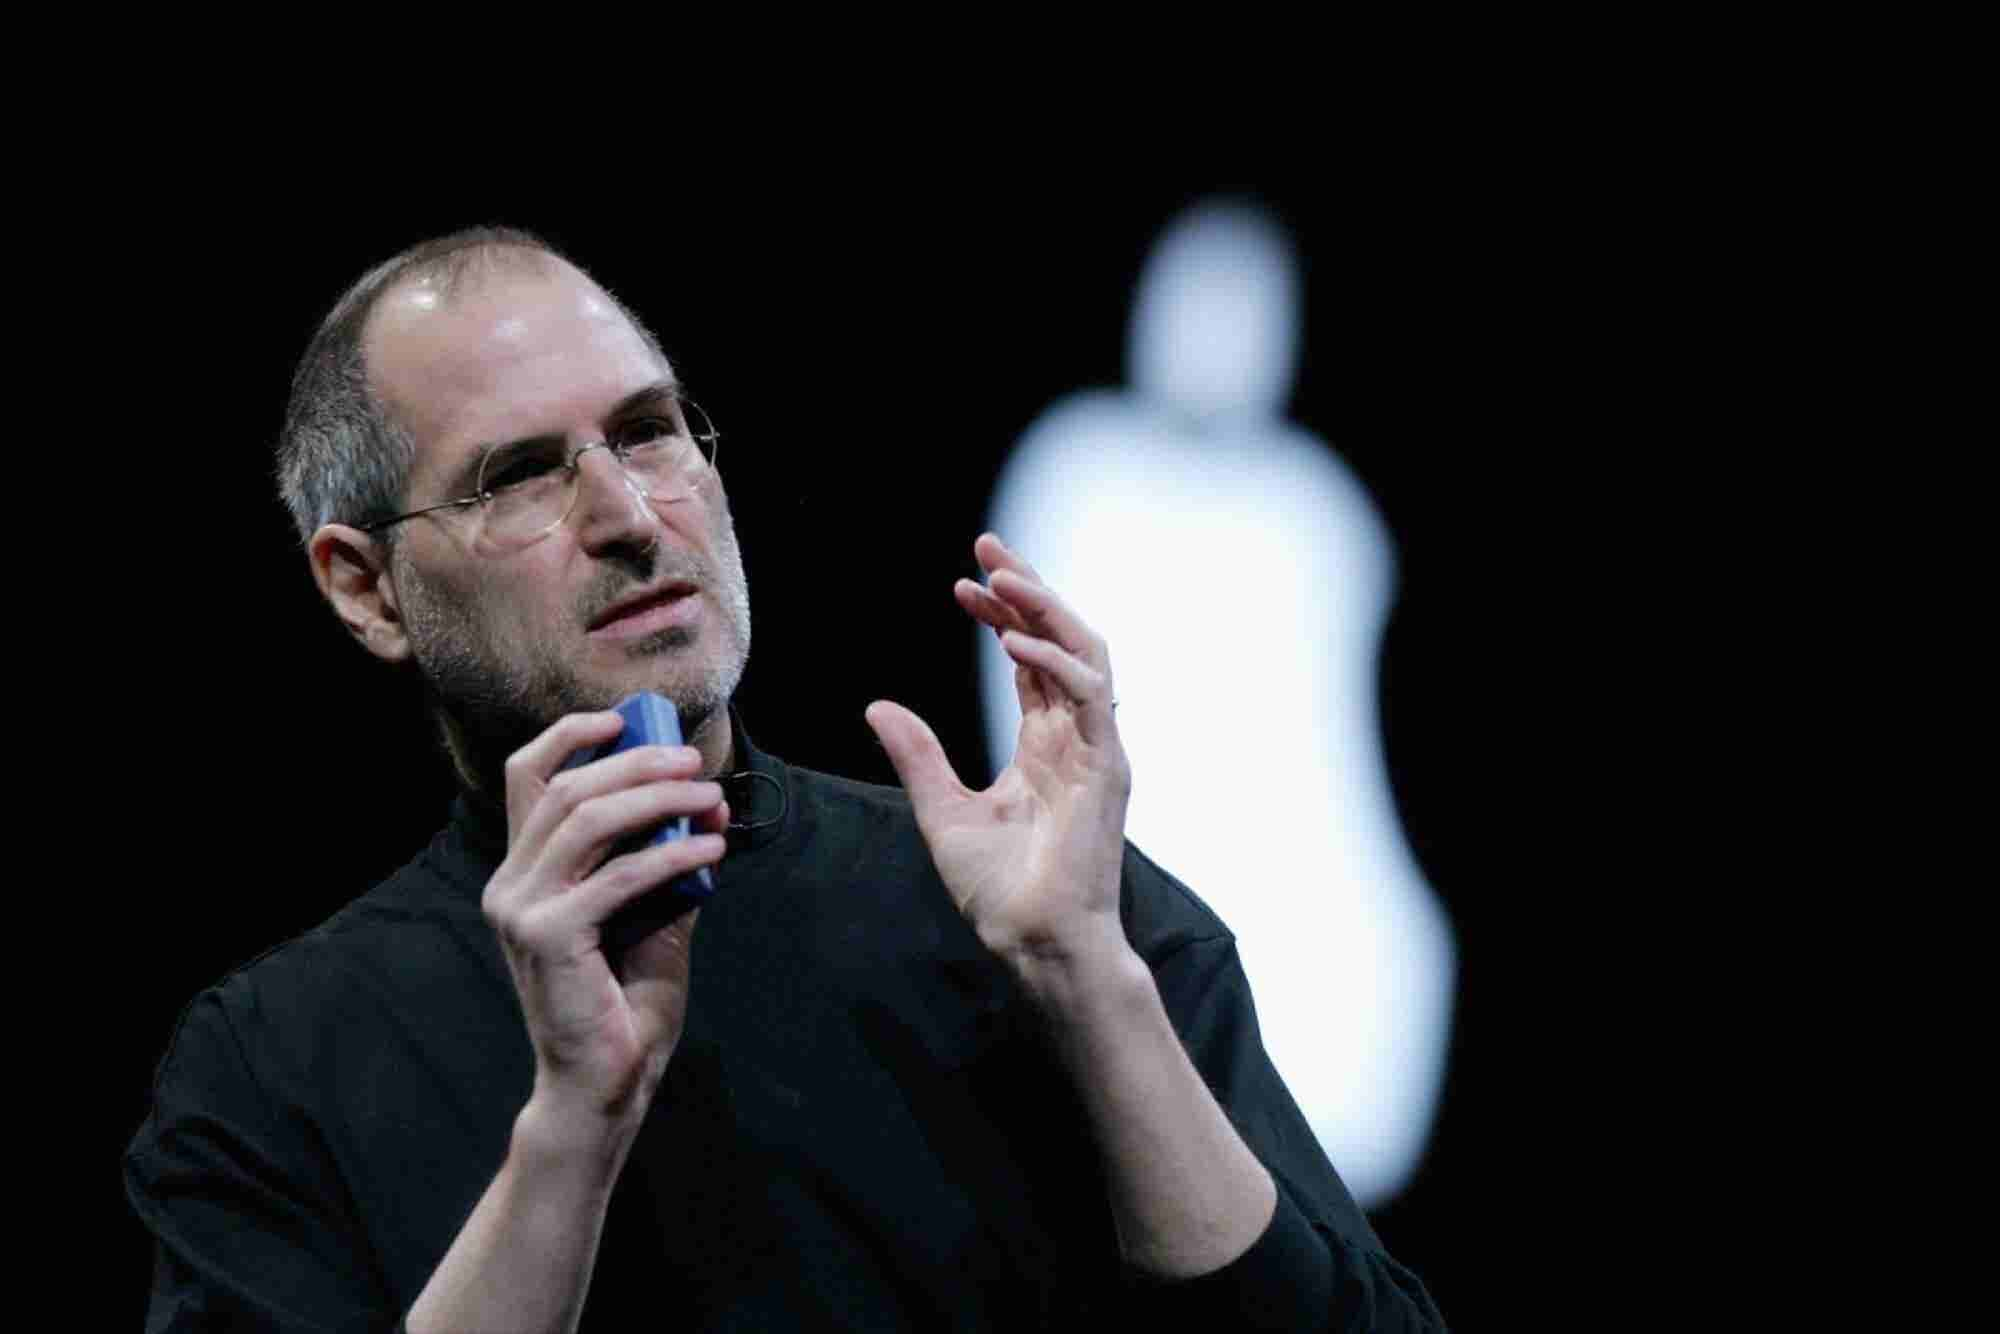 Steve Jobs Was an Arrogant You-Know-What. Jeff Bezos and Larry Ellison Aren't Teddy Bears, Either.